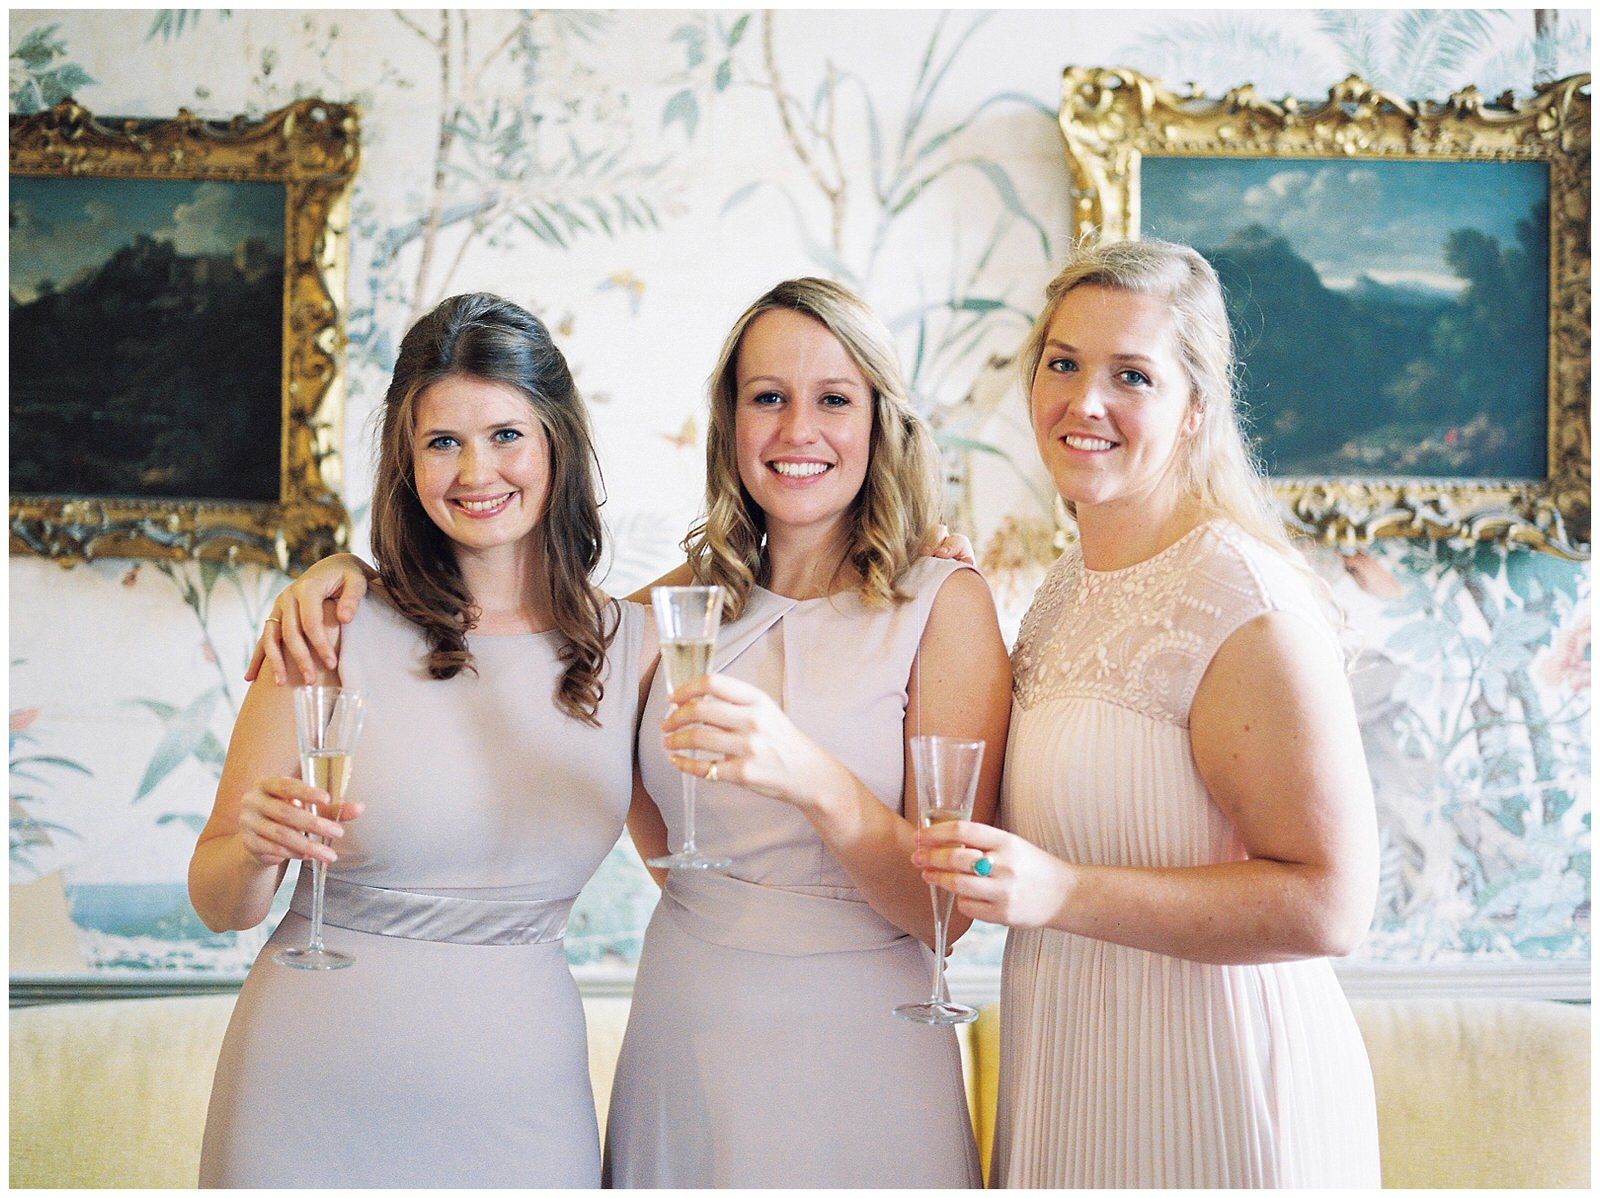 HAPPY BRIDESMAIDS DRINKING CHAMPAGNE